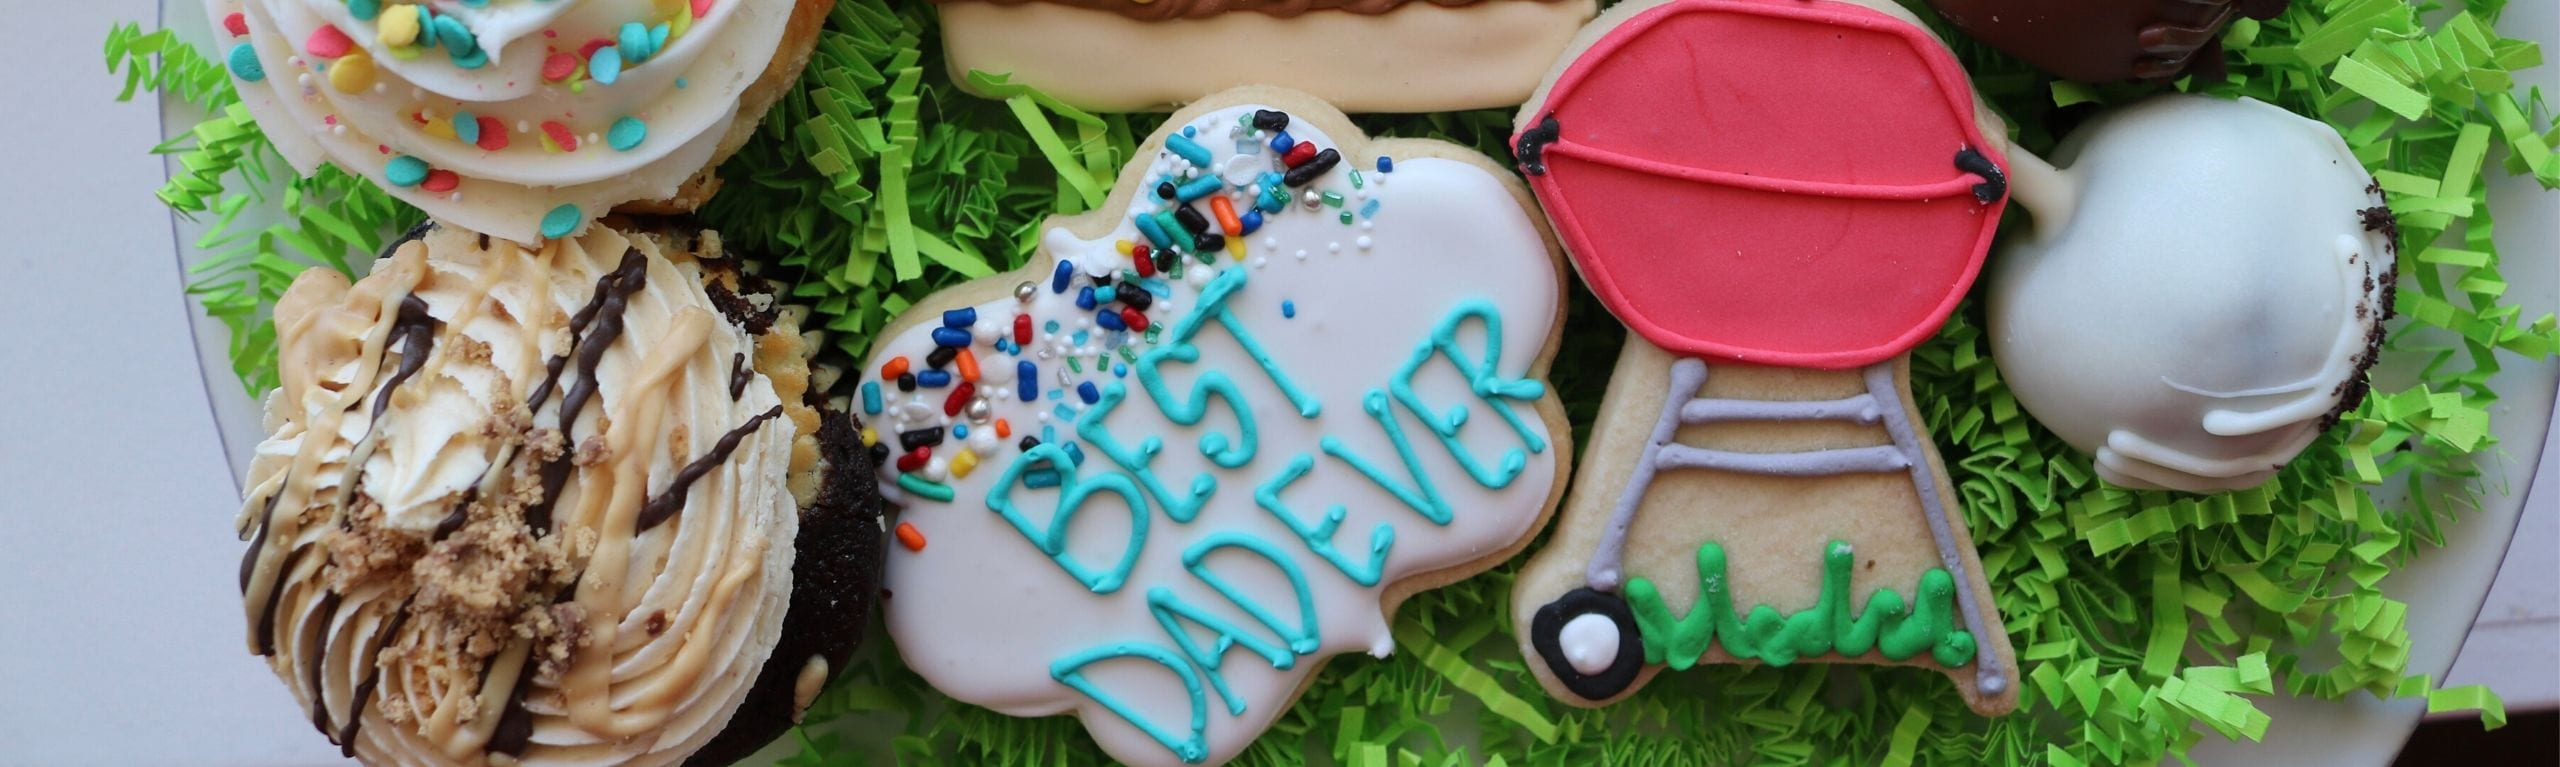 Father's Day Treats | 3 Sweet Girls Cakery